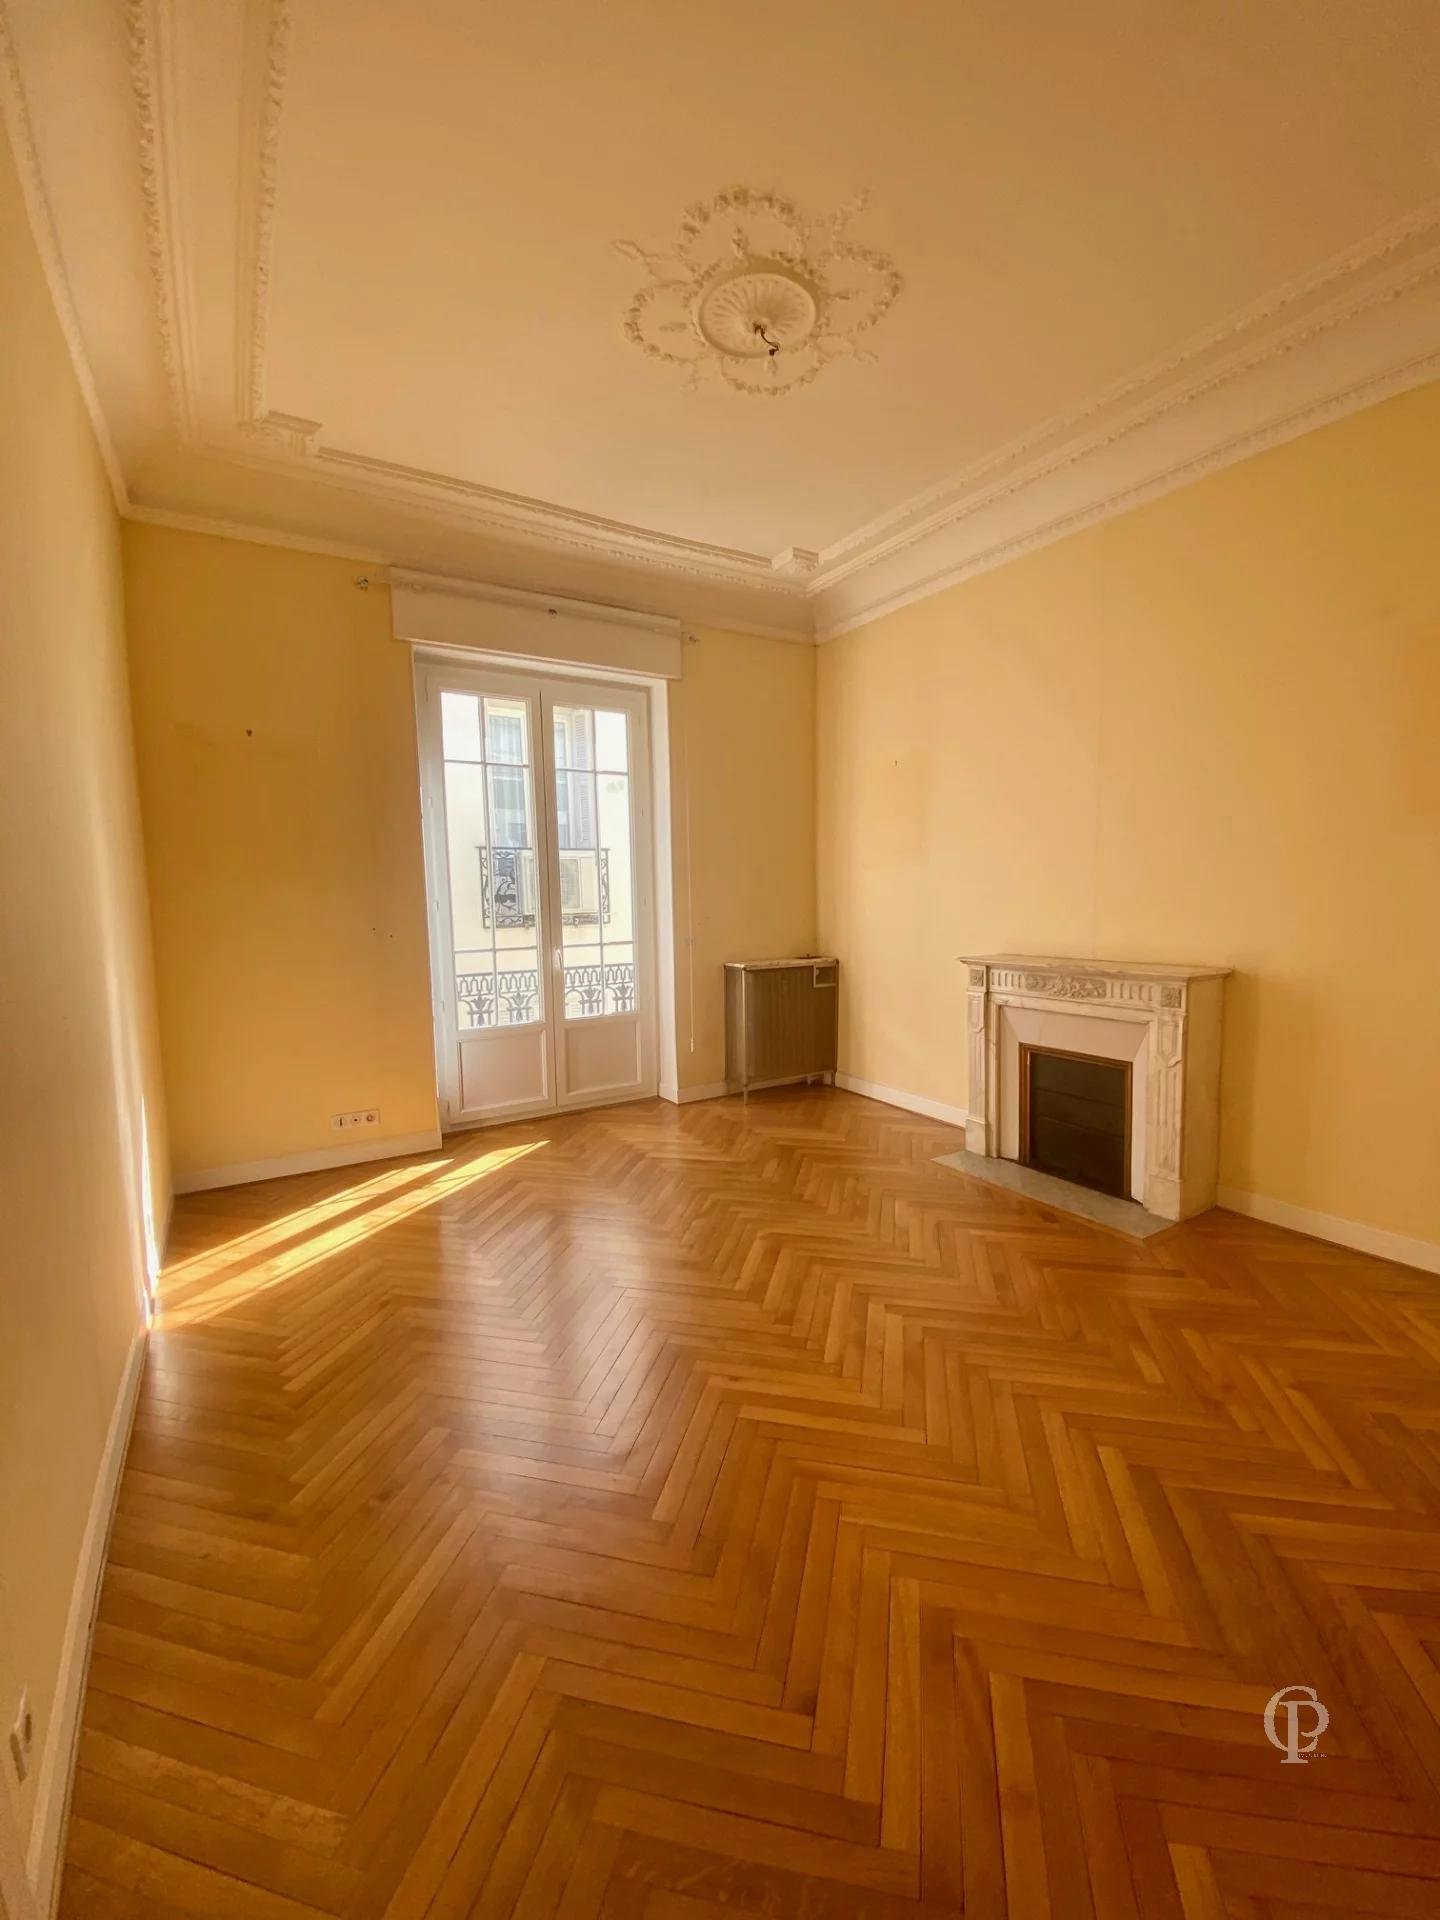 NICE PASSY/PASSY DEPOILLY 2/3 BEDROOMS